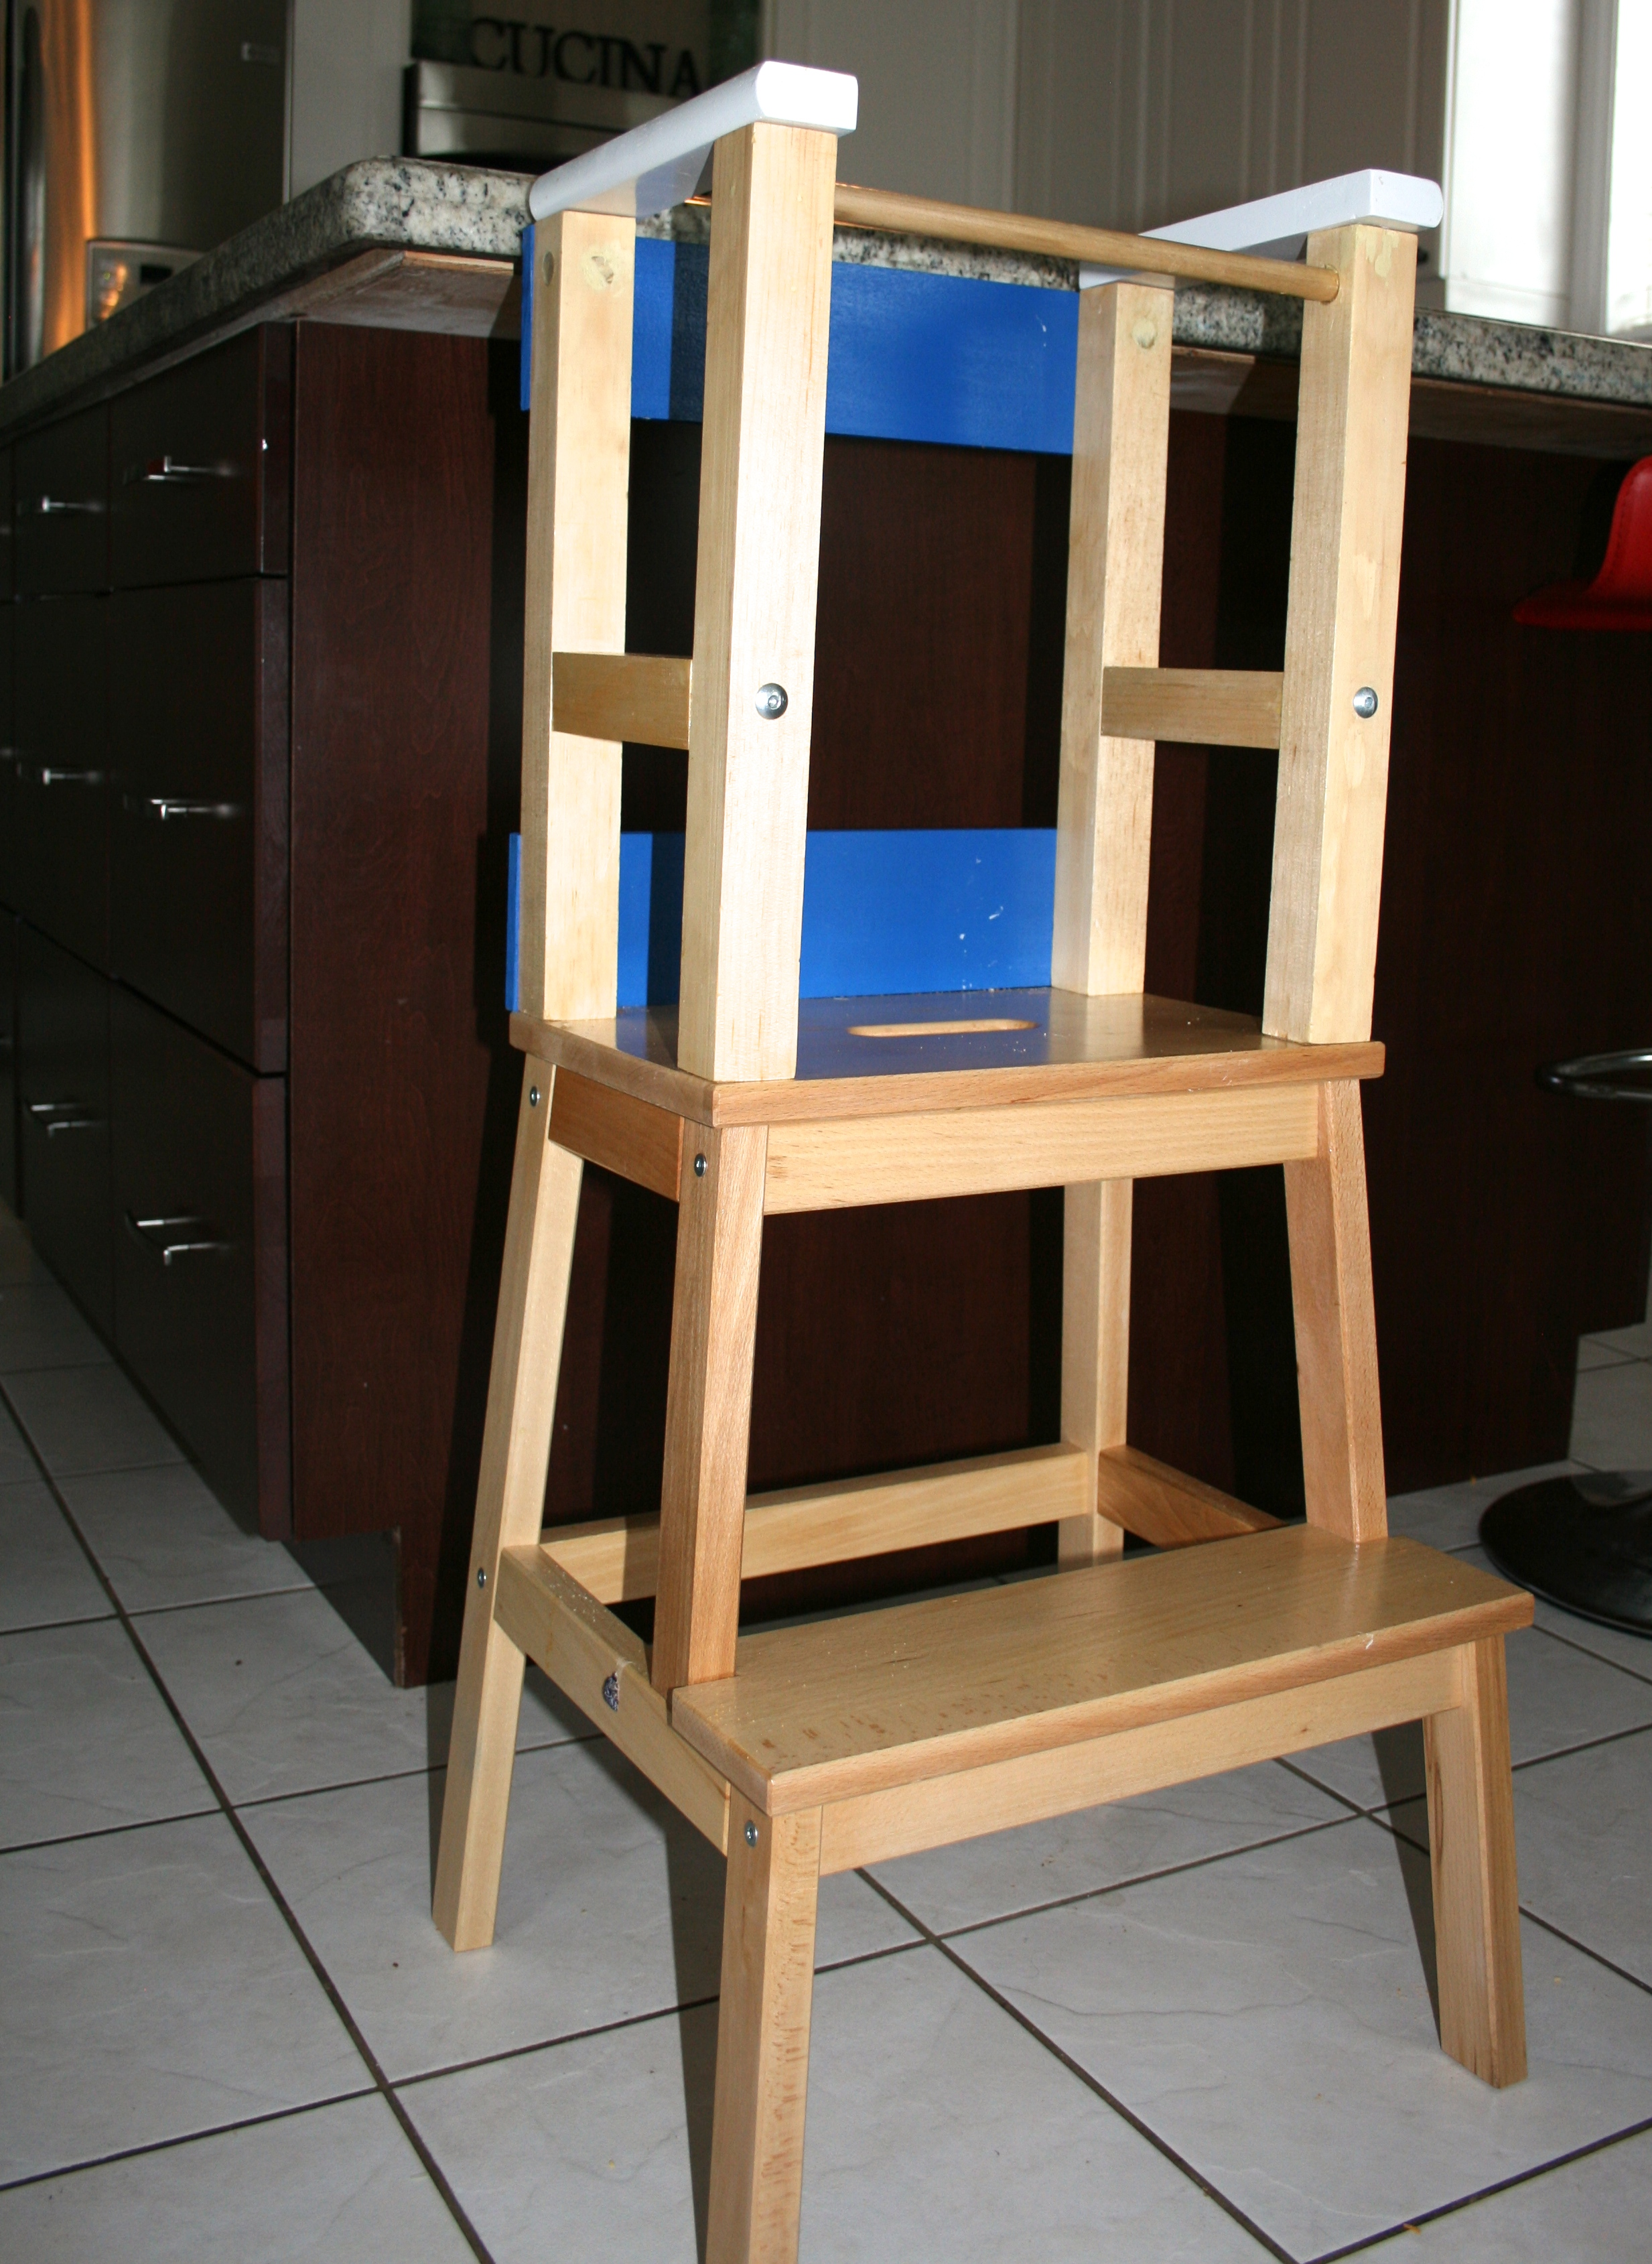 ikea kitchen step stool prefab outdoor grill islands he climbs – so i let him…sorta. diy learning tower ...